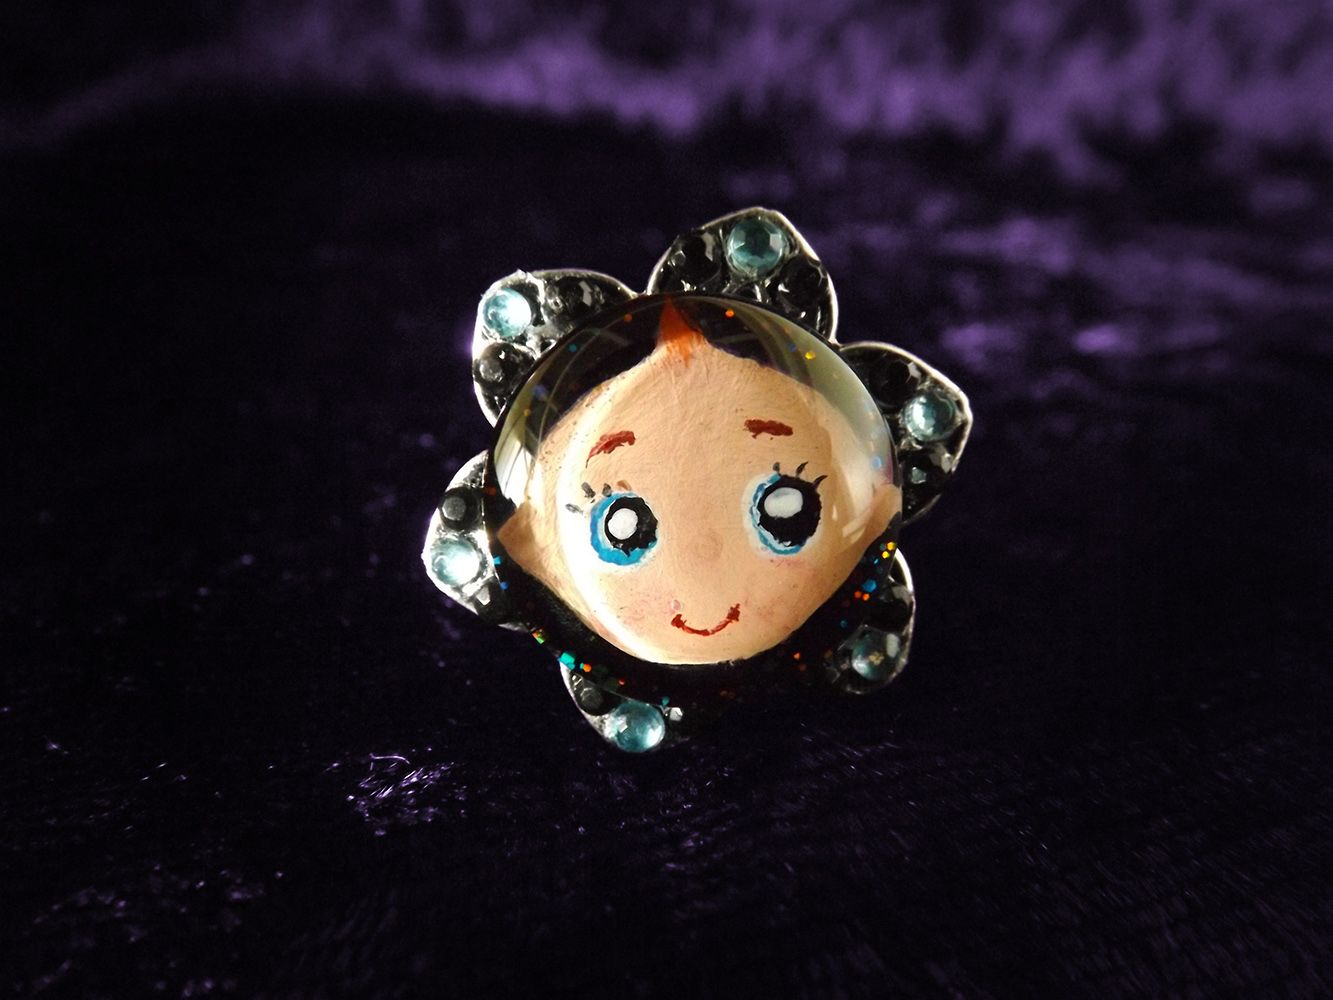 'Baby Ring' from Epheria - Bubby is here to bring you joy and heal your sads. Just look at that omnipotently adorable face, floating in the dark sparkly abyss. All hail Lord Bubby.  Hand-painted under a round 16mm glass domed cabochon, mounted on a size adjustable band, and adorned with baby blue and black diamantes.